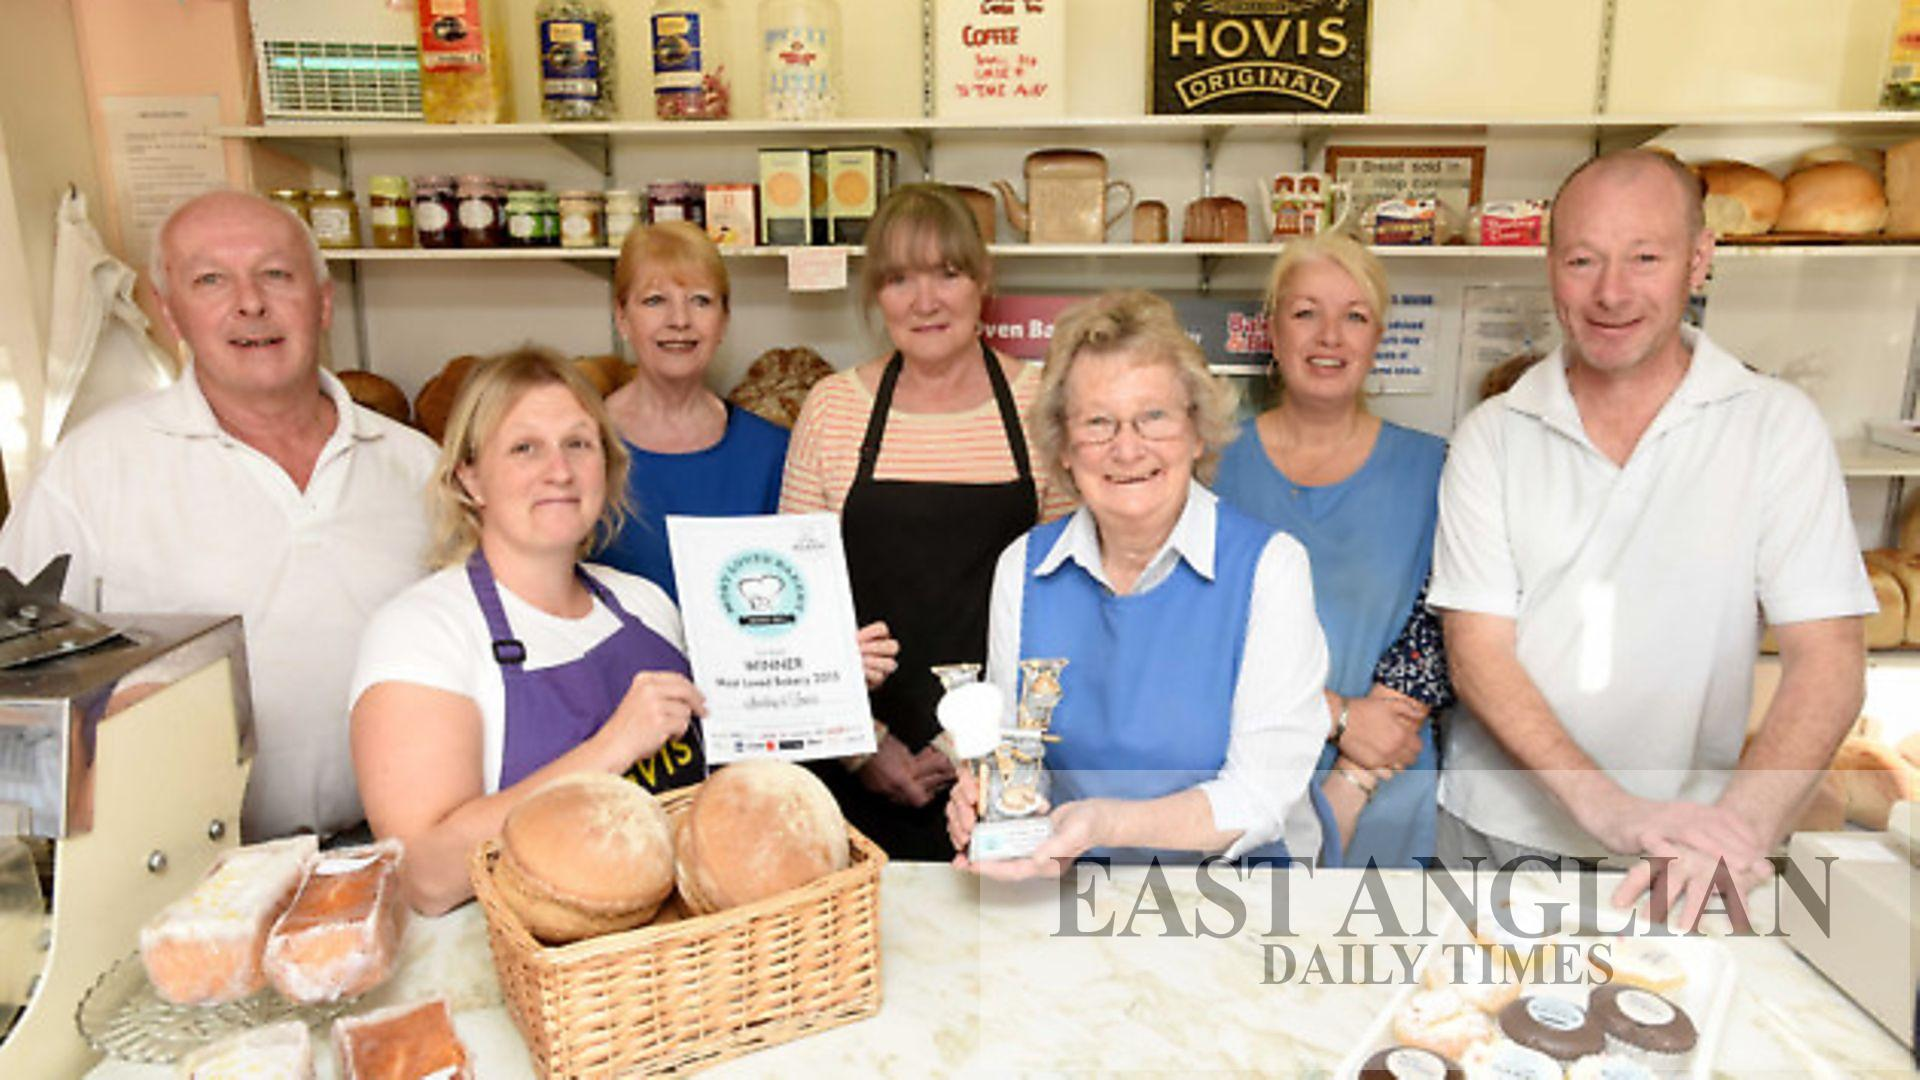 Lavenham shop voted 'most loved bakery' in East Anglia East Anglian Daily Times